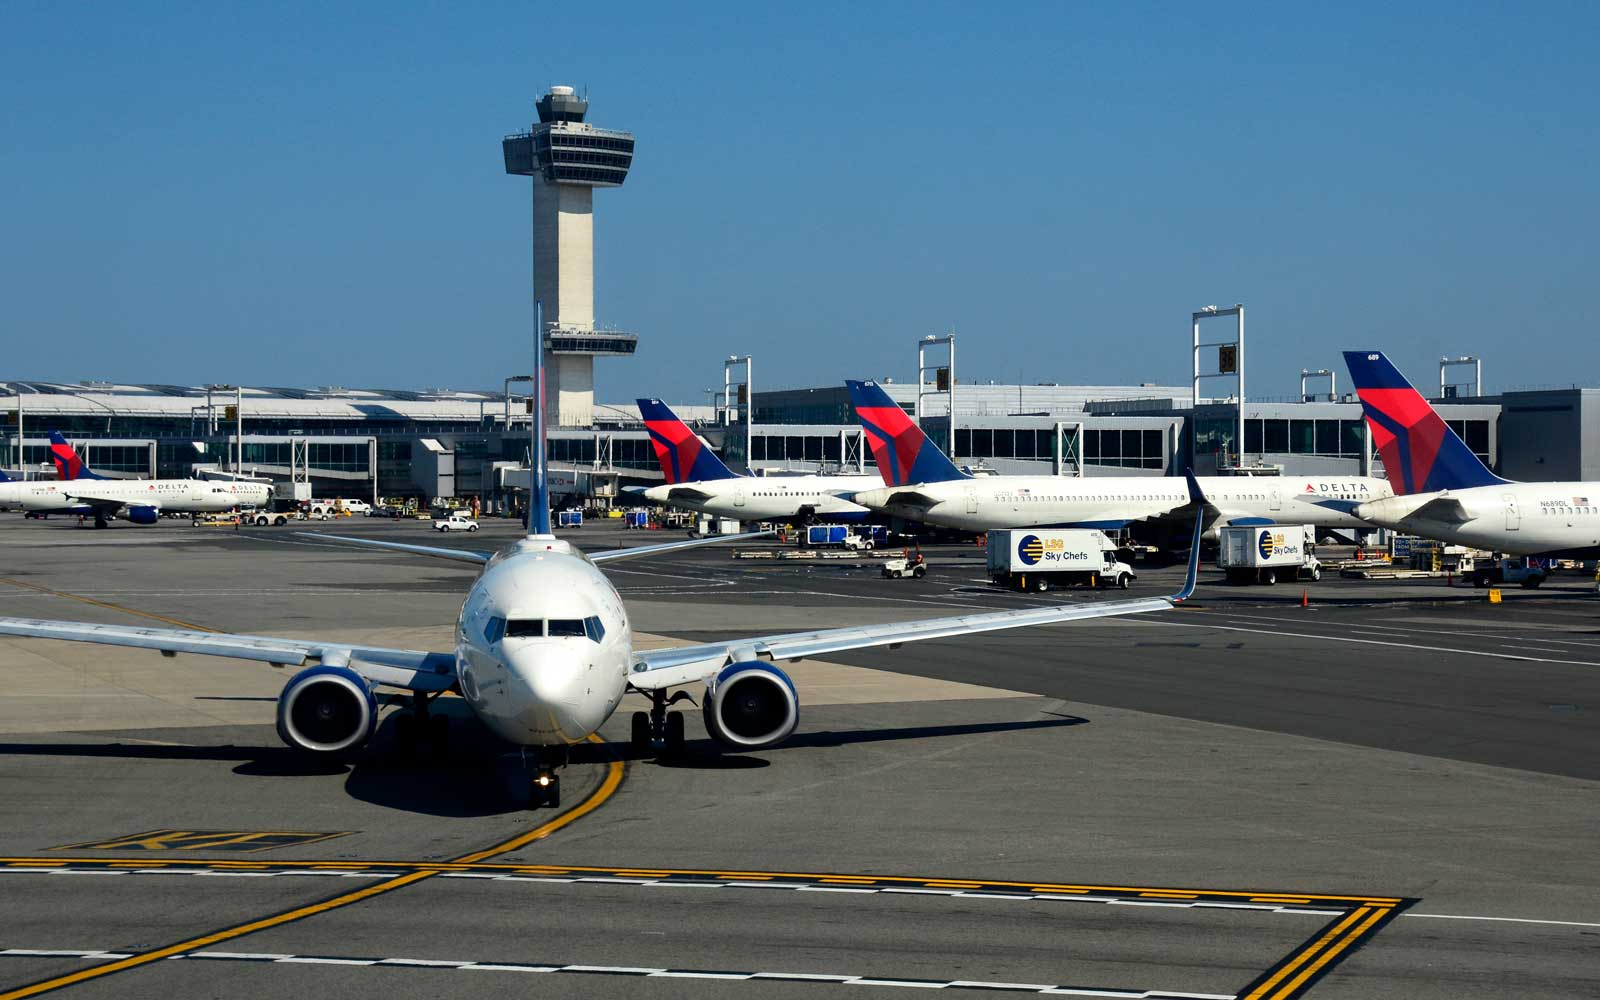 Delta Is Using New Technology That Can Predict a Problem With Your Plane Before It Happens